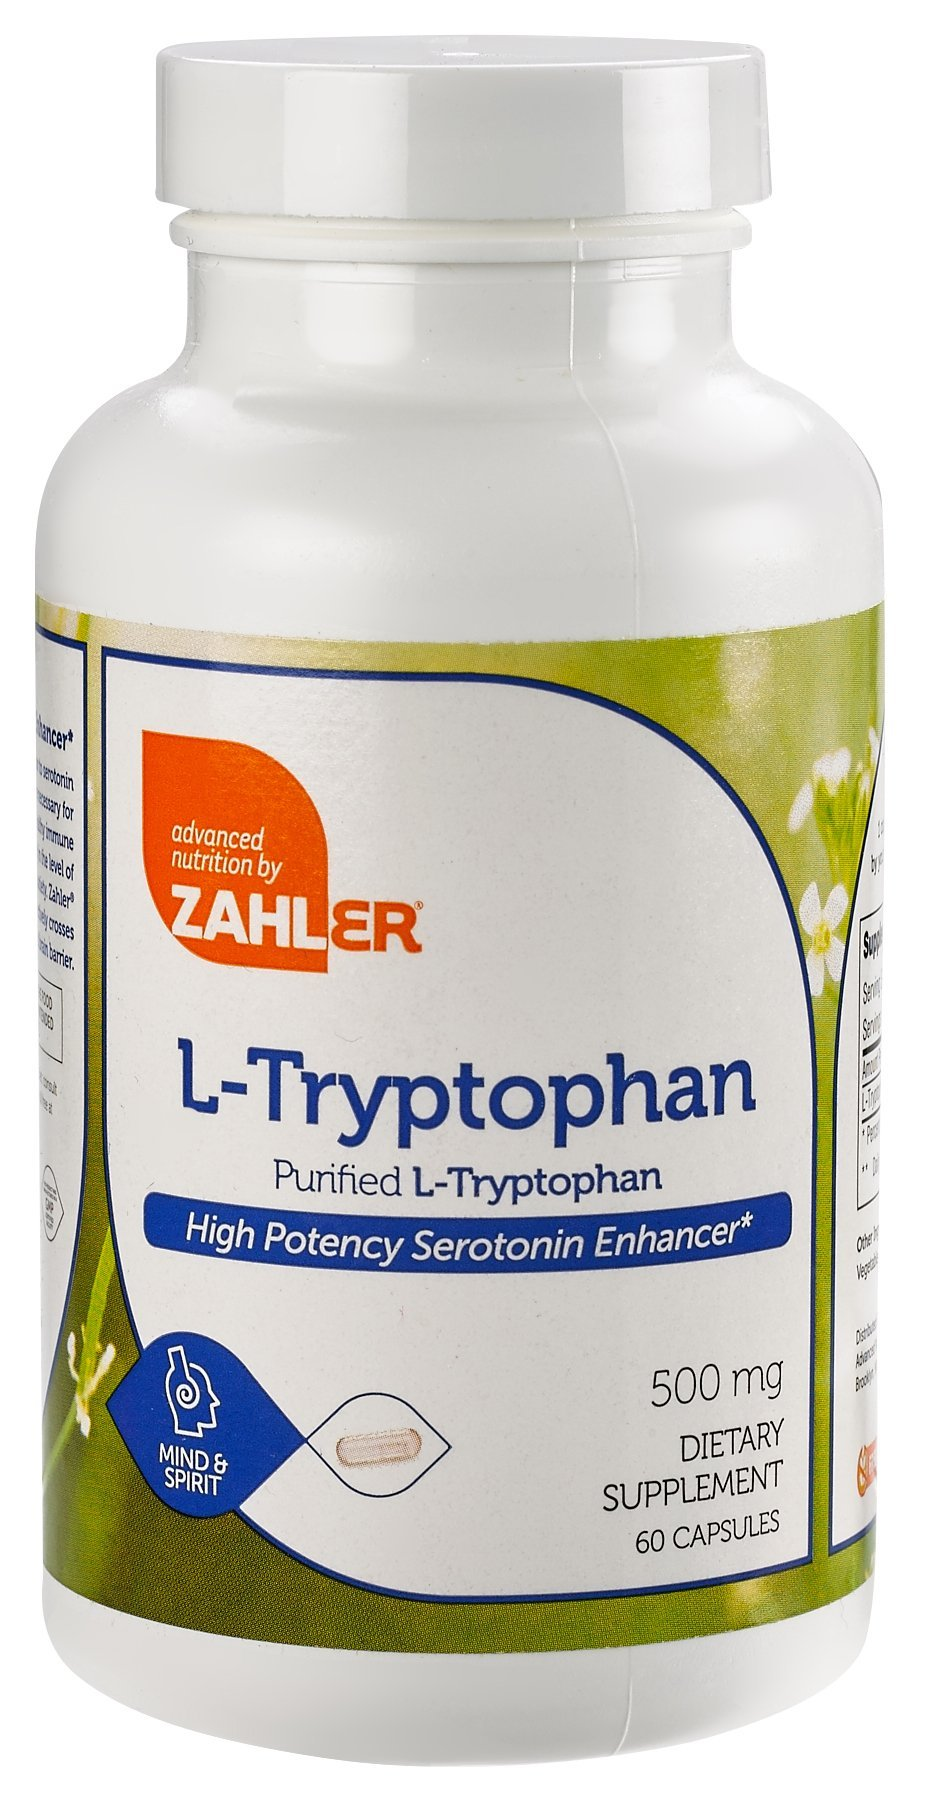 Amazon.com: Zahler L-Tryptophan 500mg Supplement, Supports Sleep Mood and Relaxation, Certified Kosher, 60 Capsules: Health & Personal Care